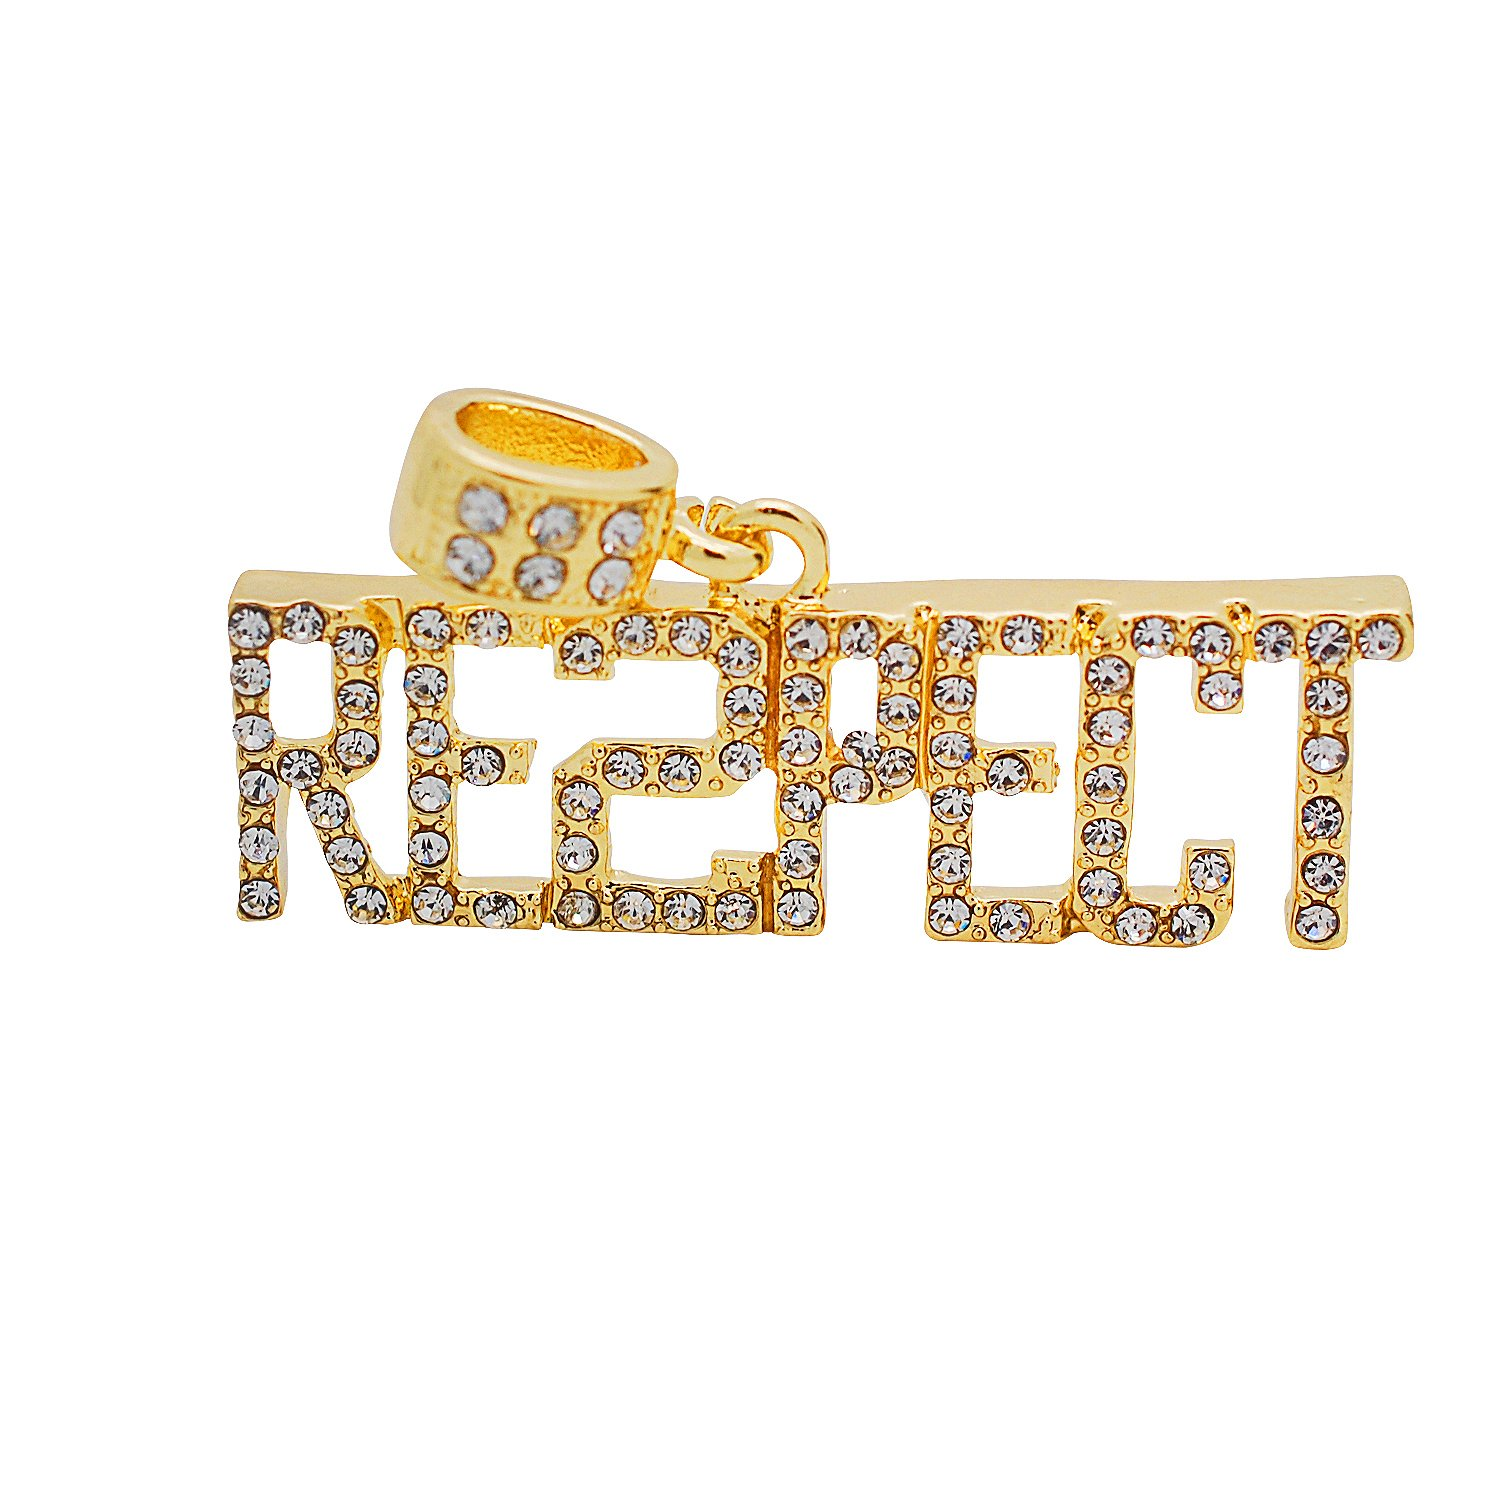 Yellow Gold-Tone Hip Hop Bling Simulated CrystalRE2PECT Letter Pendant with 24 Tennis Chain and 24 Rope Chain